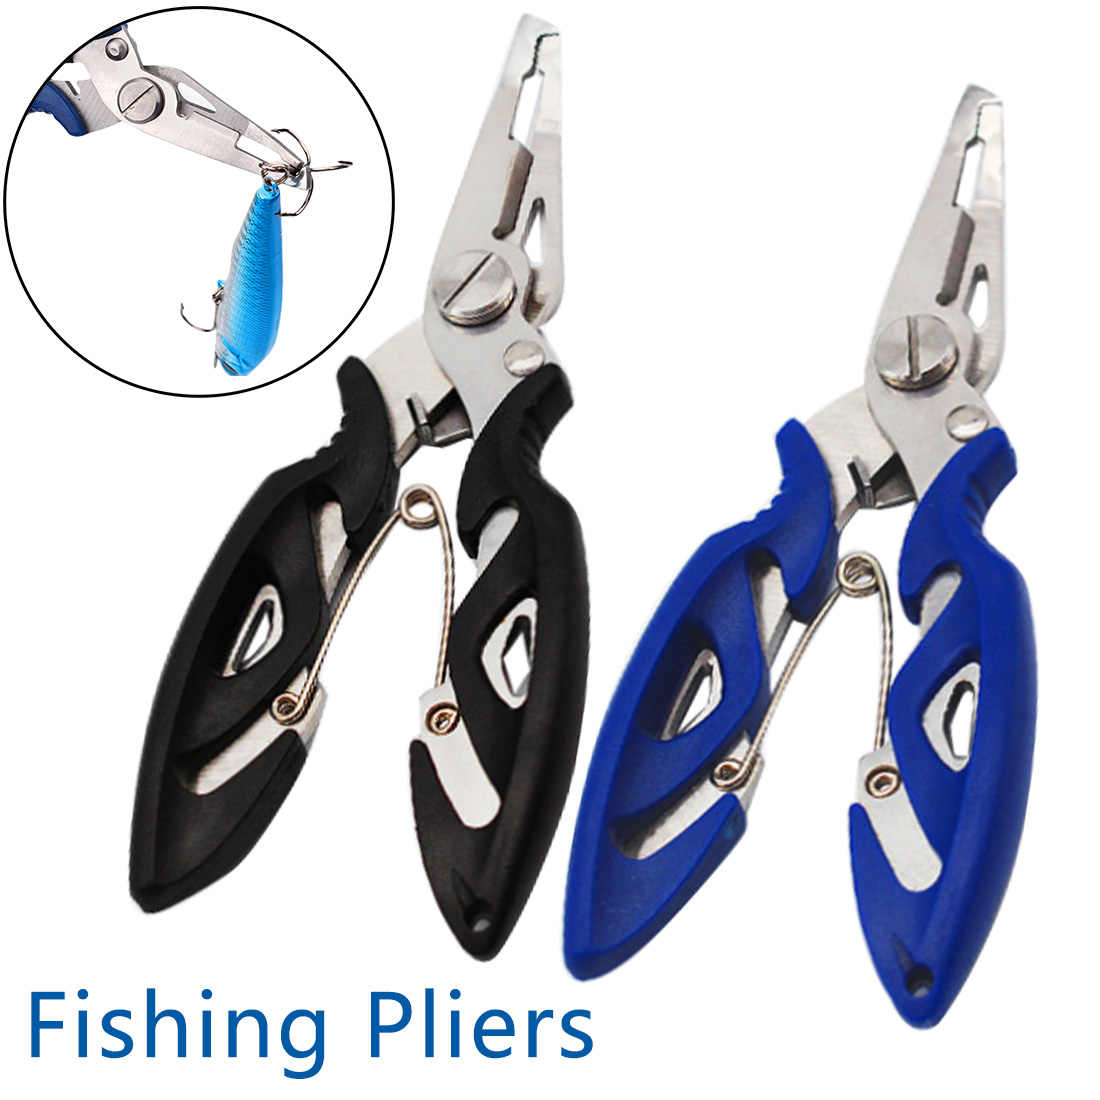 1 pc Multifunctional Fishing Plier Steel Tackle Lure Hook Remover Line Cutter Scissors Carp Fishing Shears